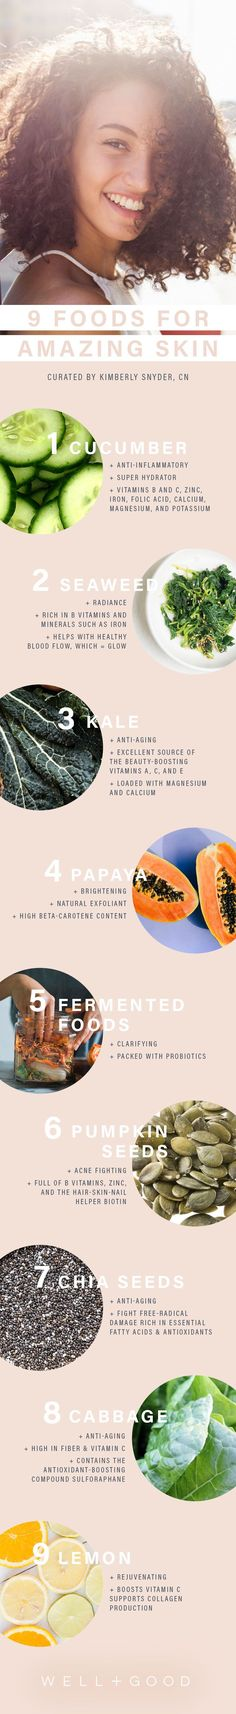 Psoriasis Revolution From cucumbers and papaya to kale and sauerkraut (surprise!)—these are the foods that can seriously impact the look and health of your skin. Diy Skin Care, Skin Care Tips, Best Beauty Tips, Beauty Hacks, Organic Skin Care, Natural Skin Care, Natural Beauty, Natural Life, Natural Living